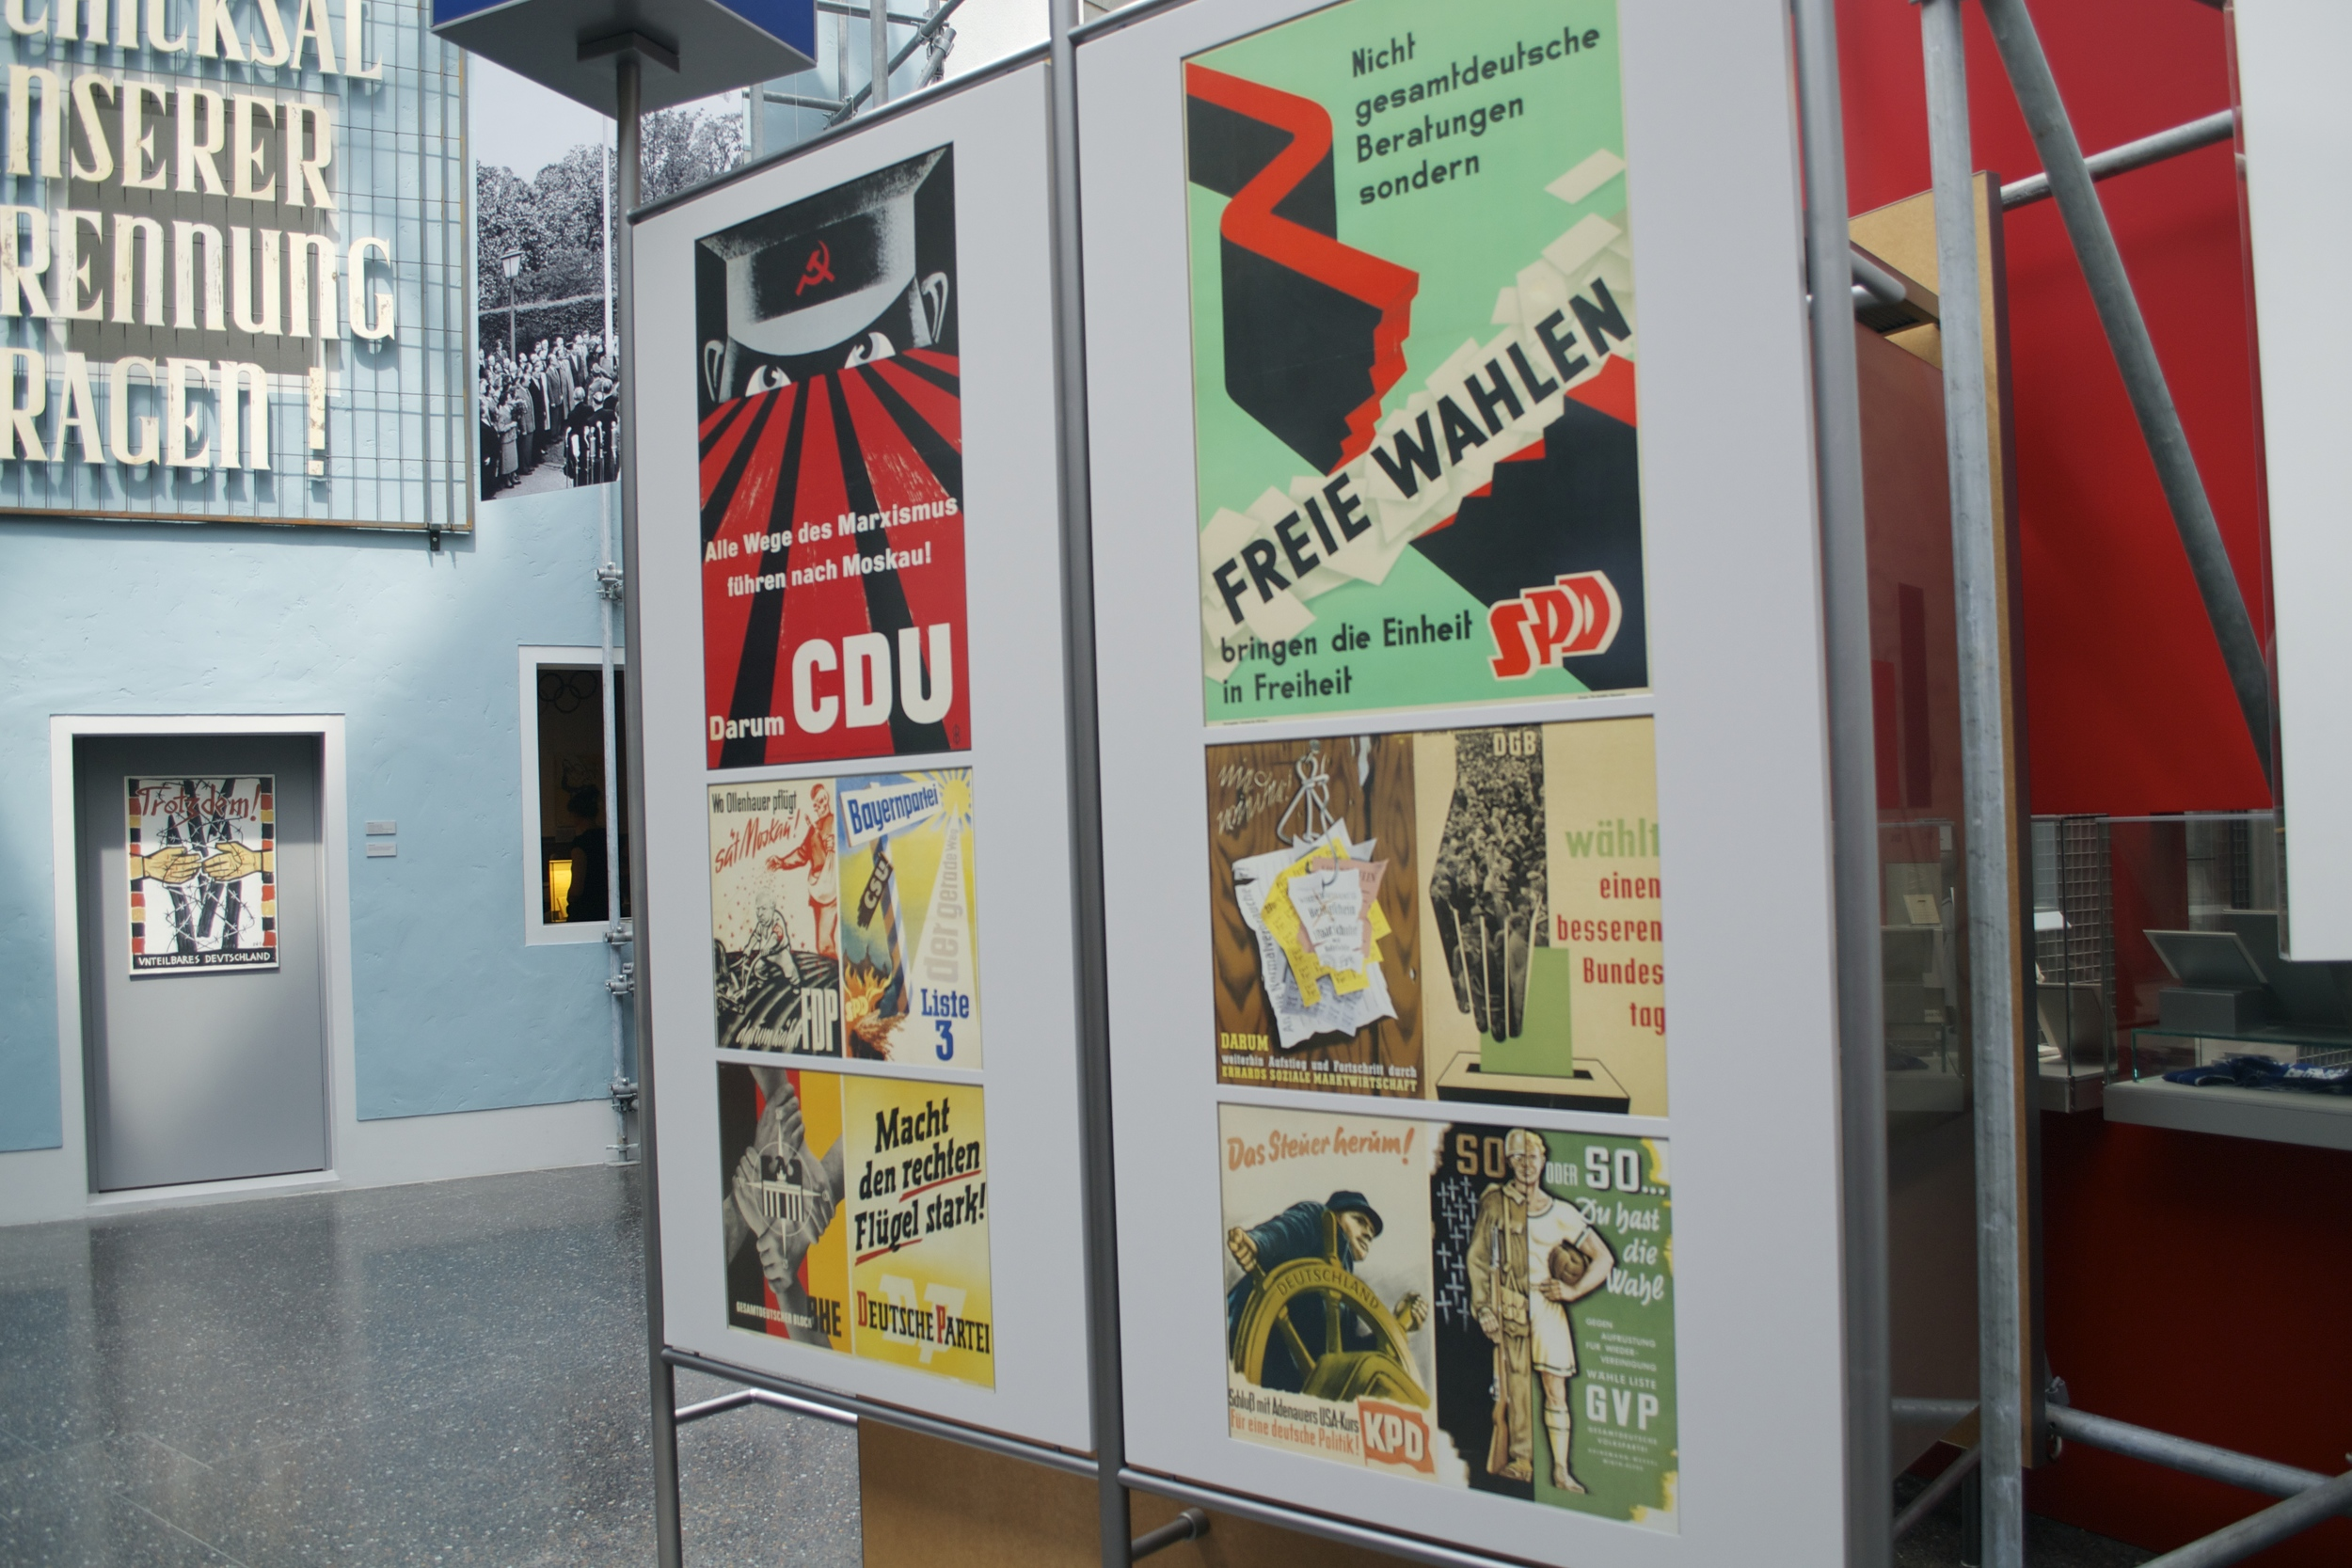 Campaign posters from the early days of Germany's post-war parties.